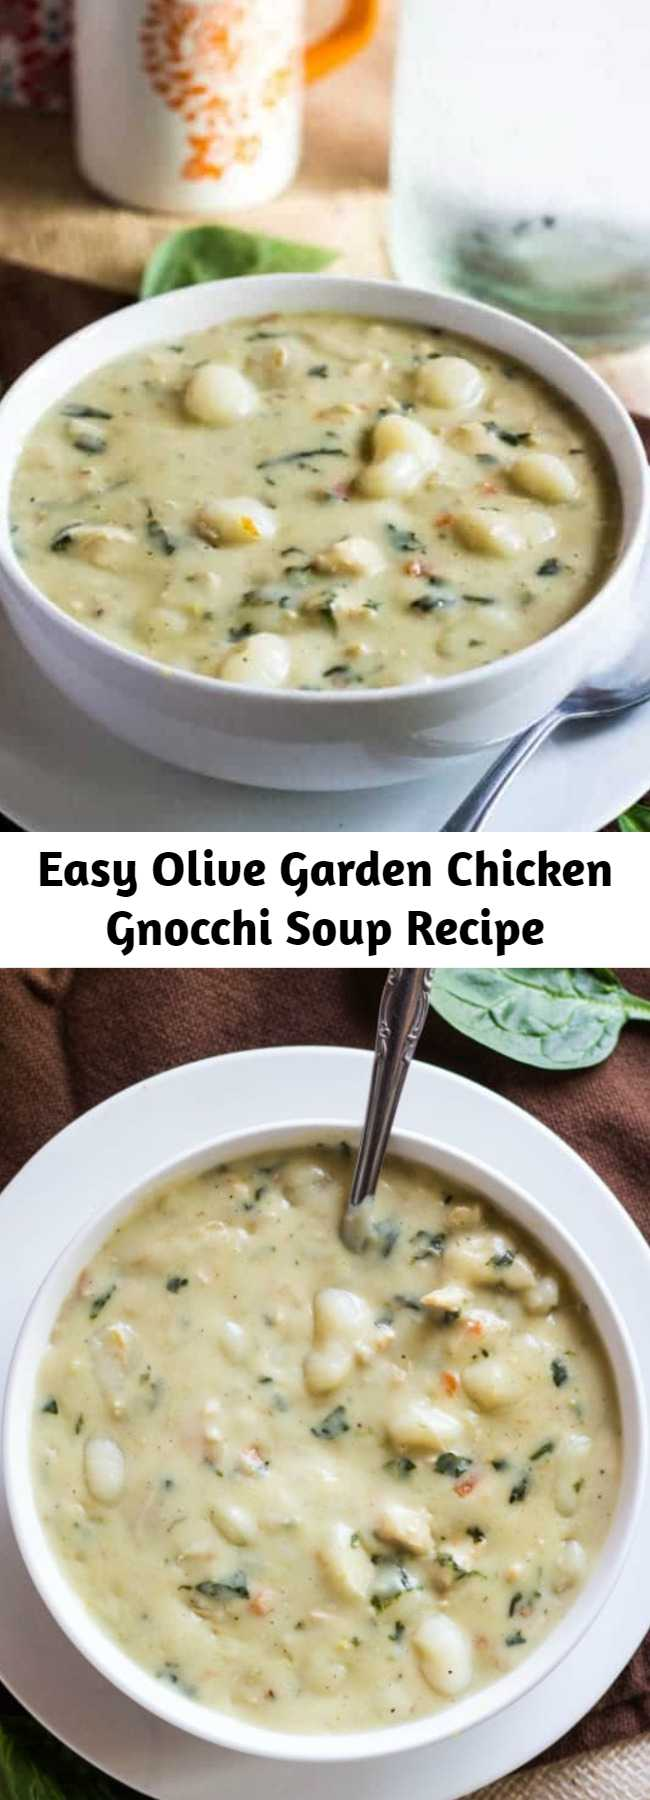 Easy Olive Garden Chicken Gnocchi Soup Recipe - Want a tasty copycat recipe that everyone will love? This Olive Garden Chicken Gnocchi Soup is easy, flavorful and completely addicting. Simple ingredients make this better than the original!